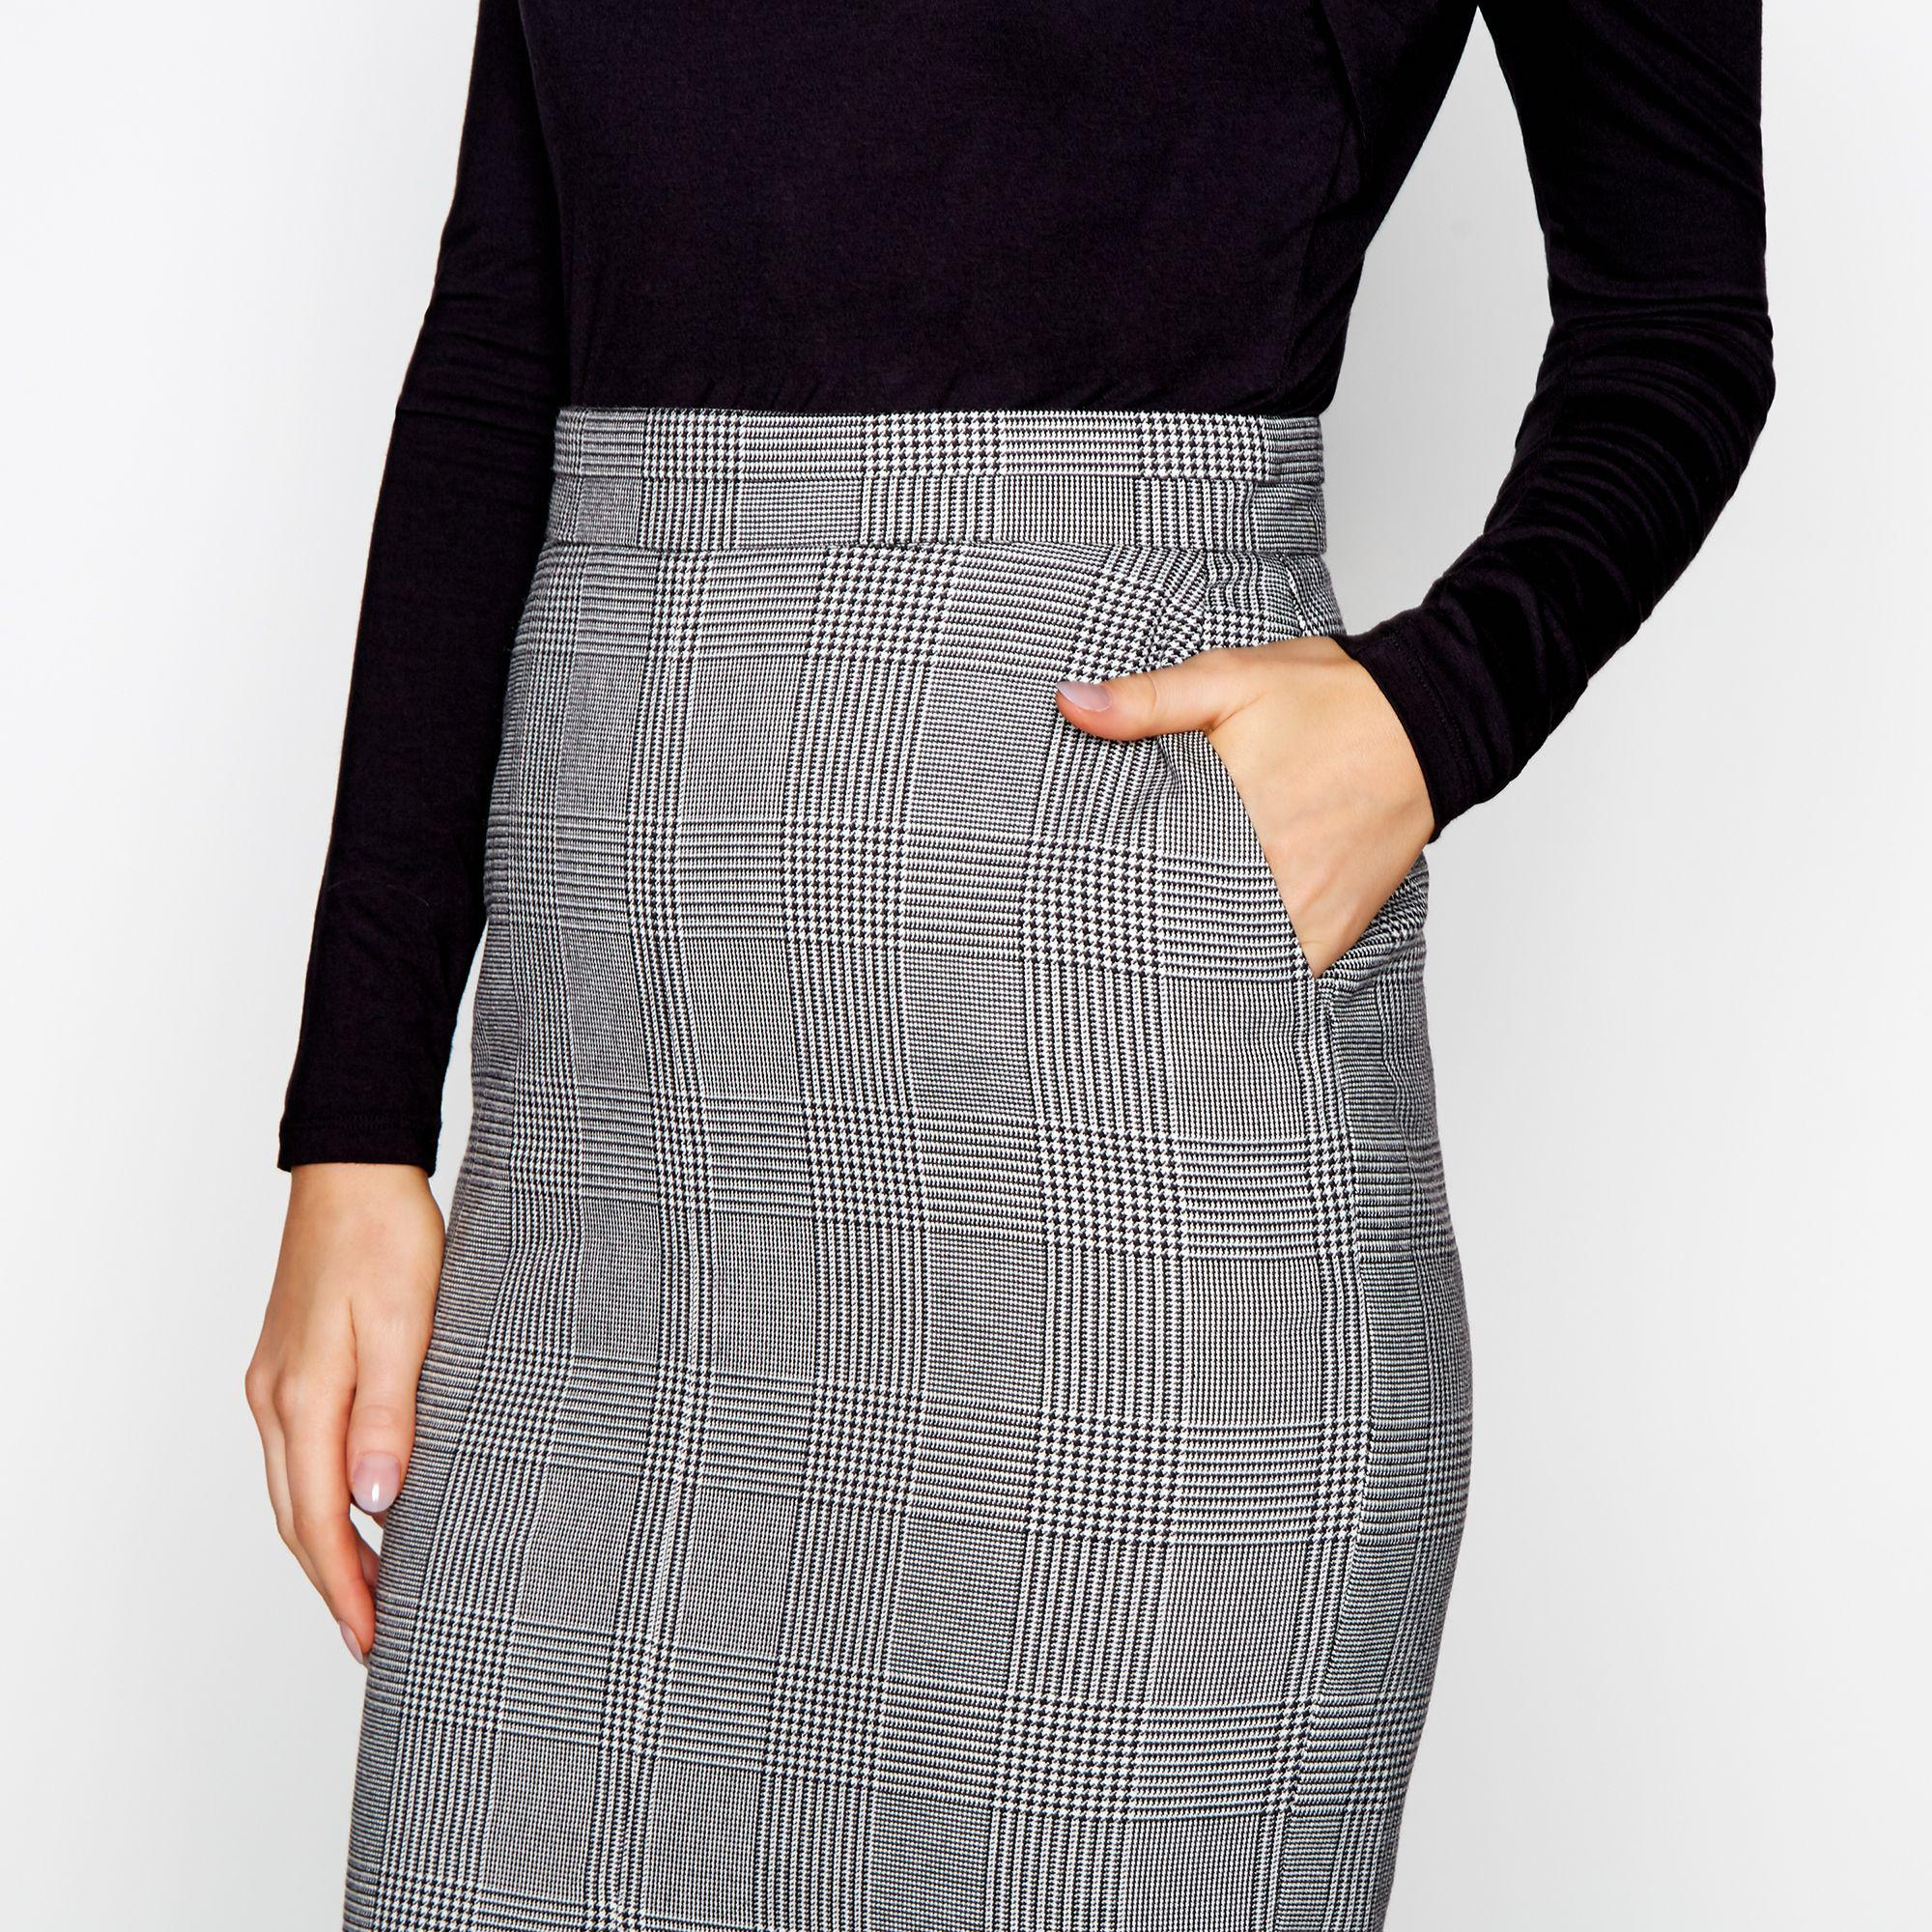 J By Jasper Conran Gray Black And White Prince Of Wales Checked Pencil Skirt